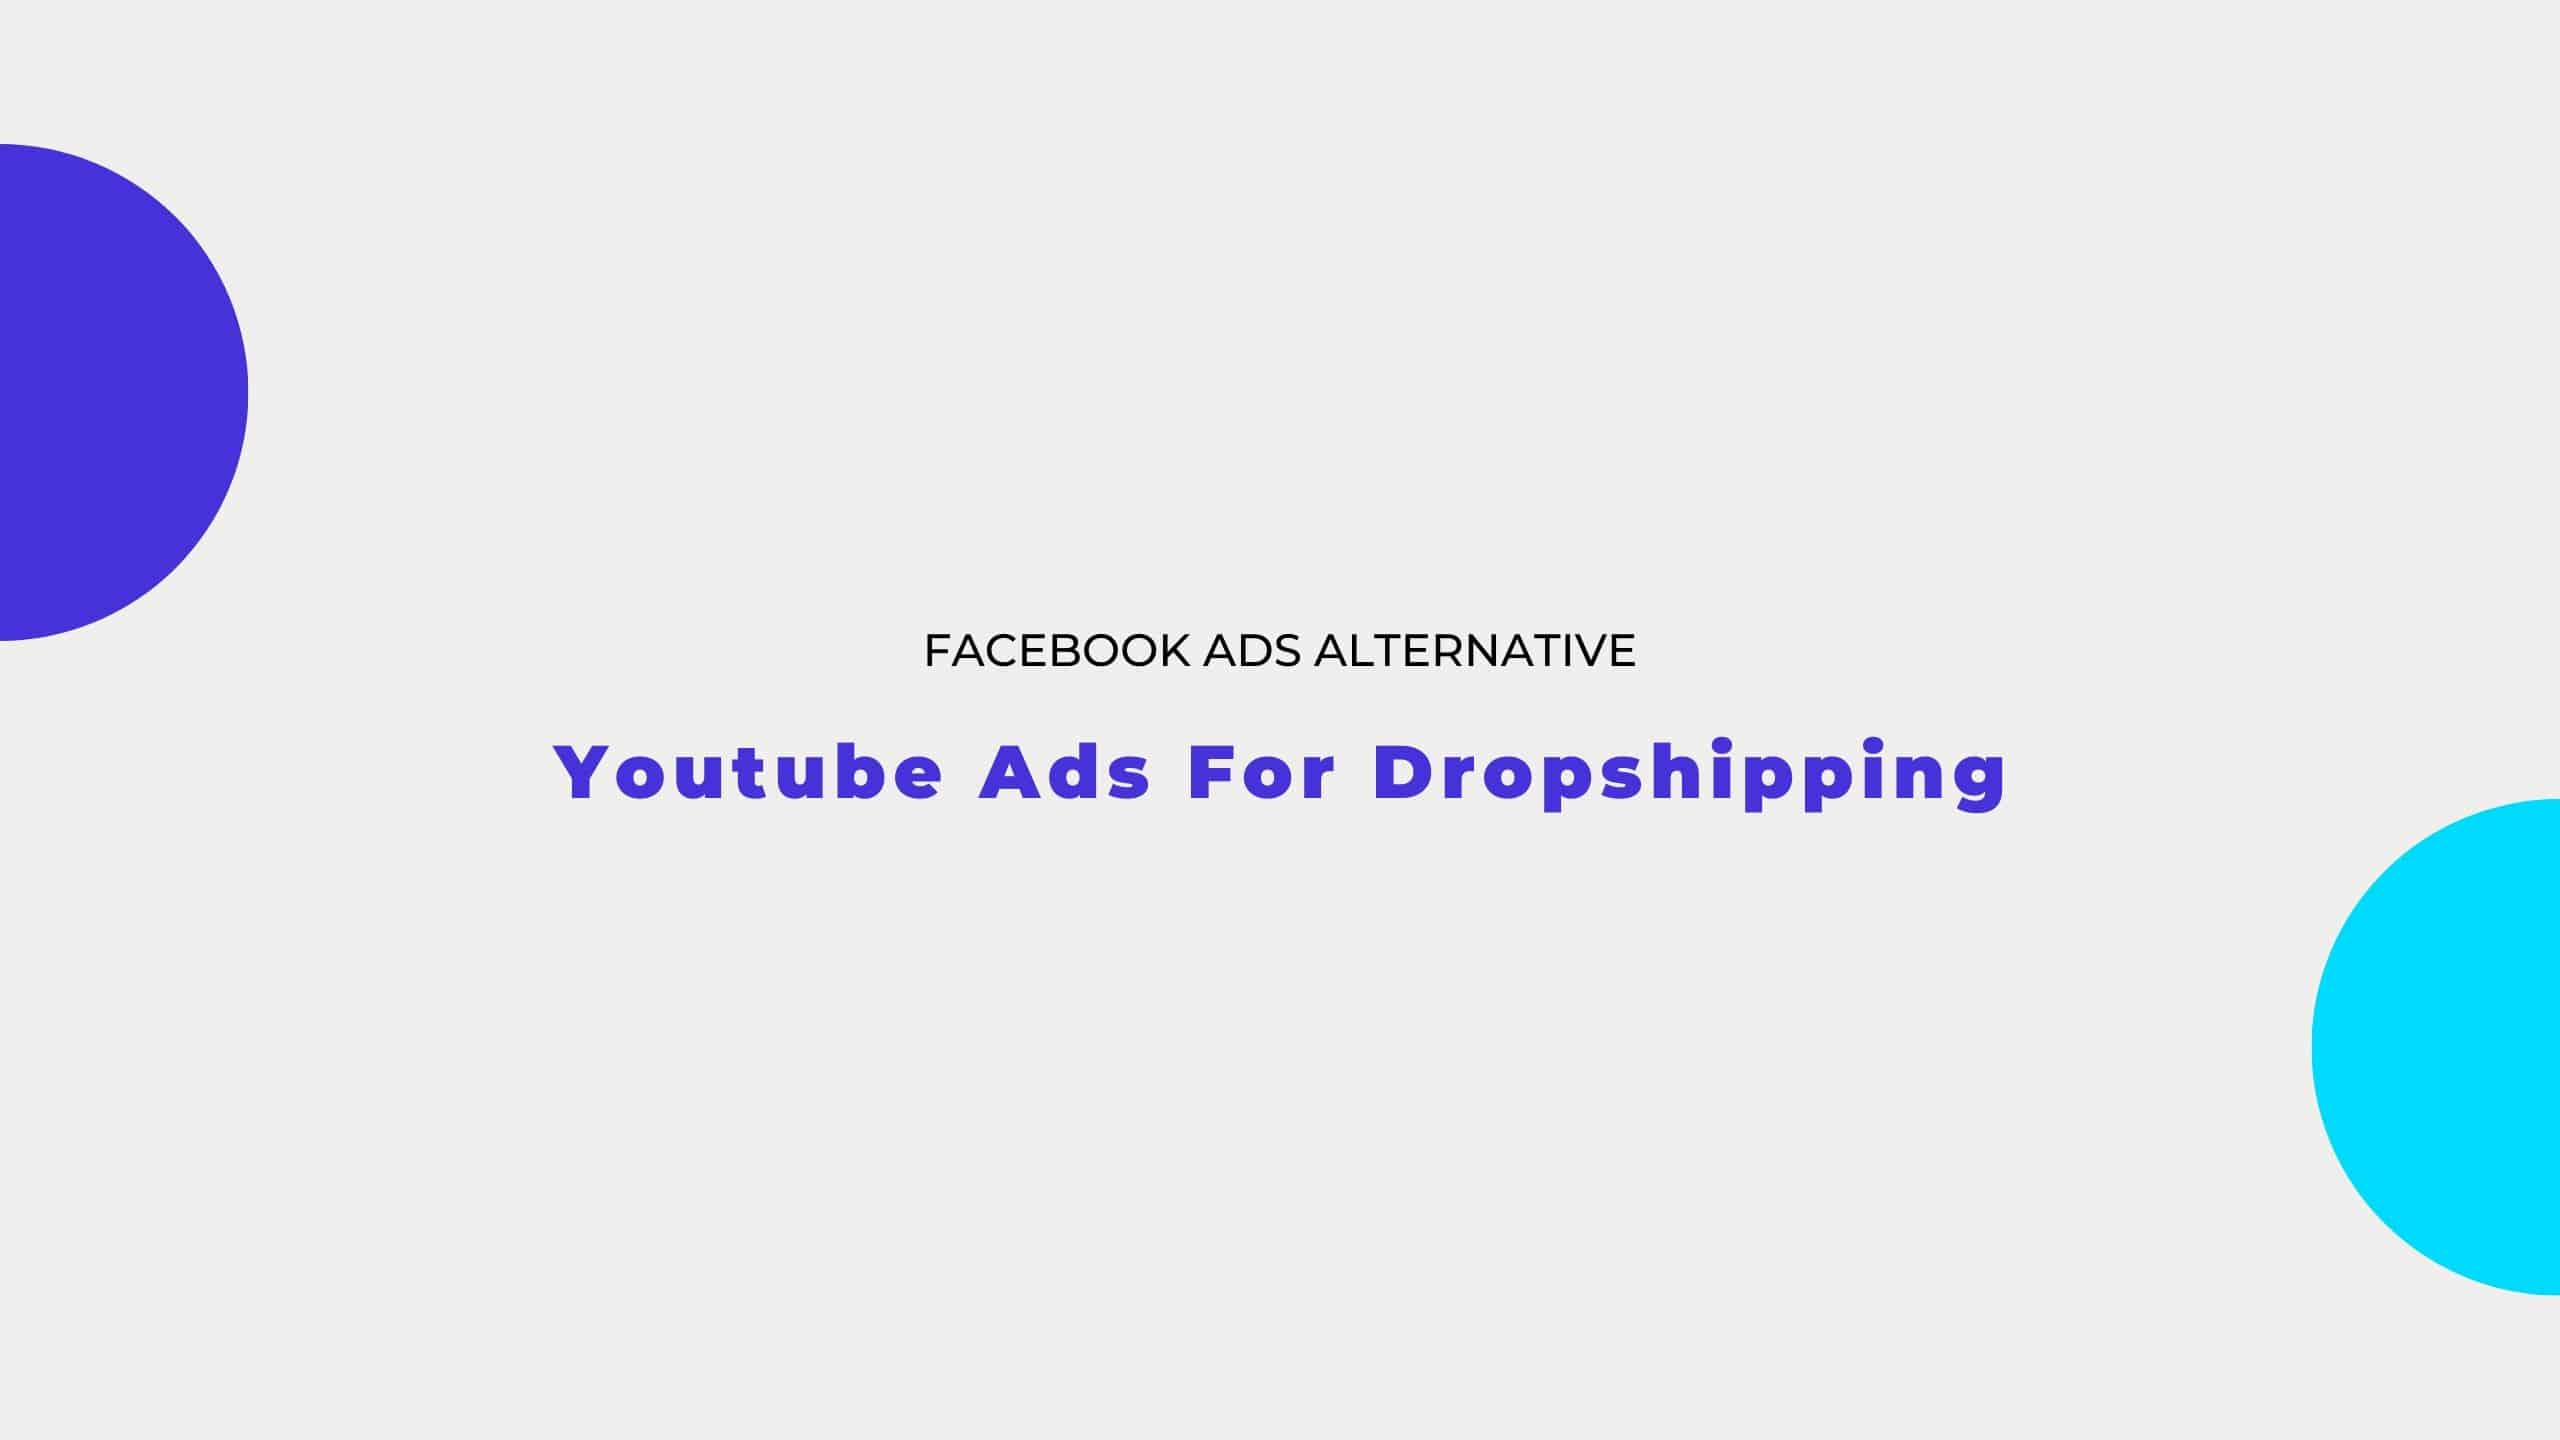 Youtube Ads for Dropshipping